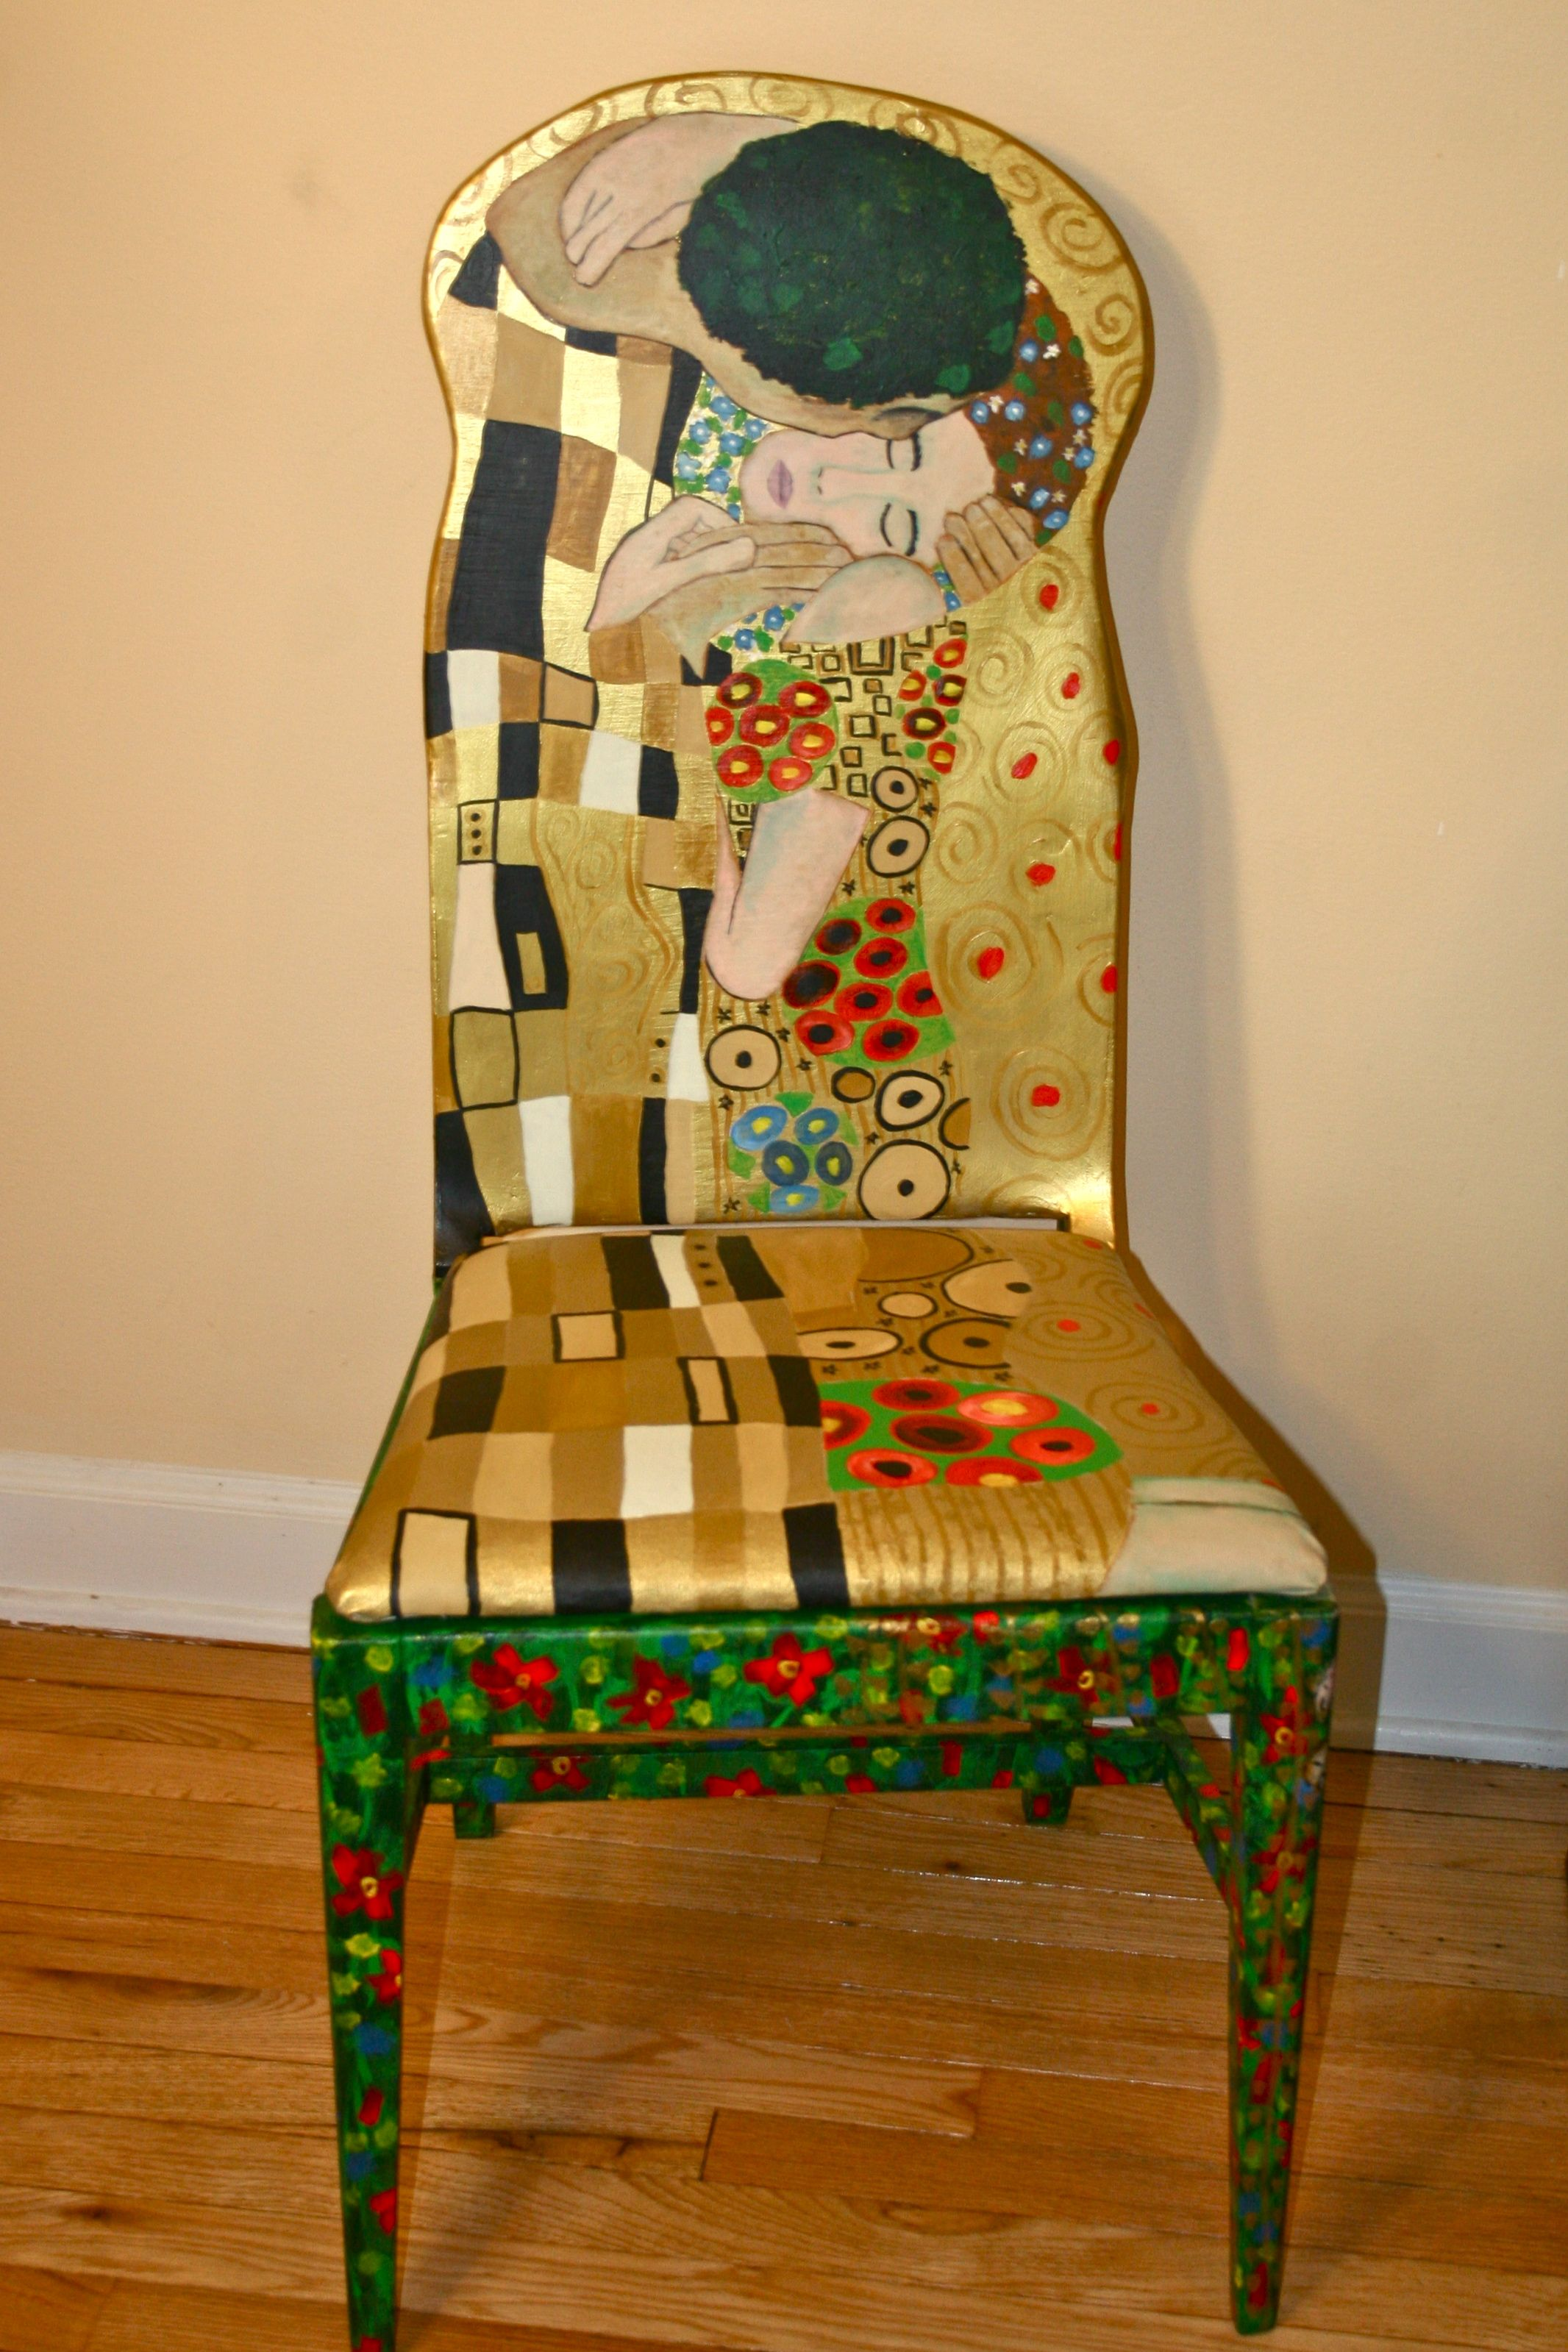 The Latest Upcycled Chair By Artist Todd Fendos The Kiss